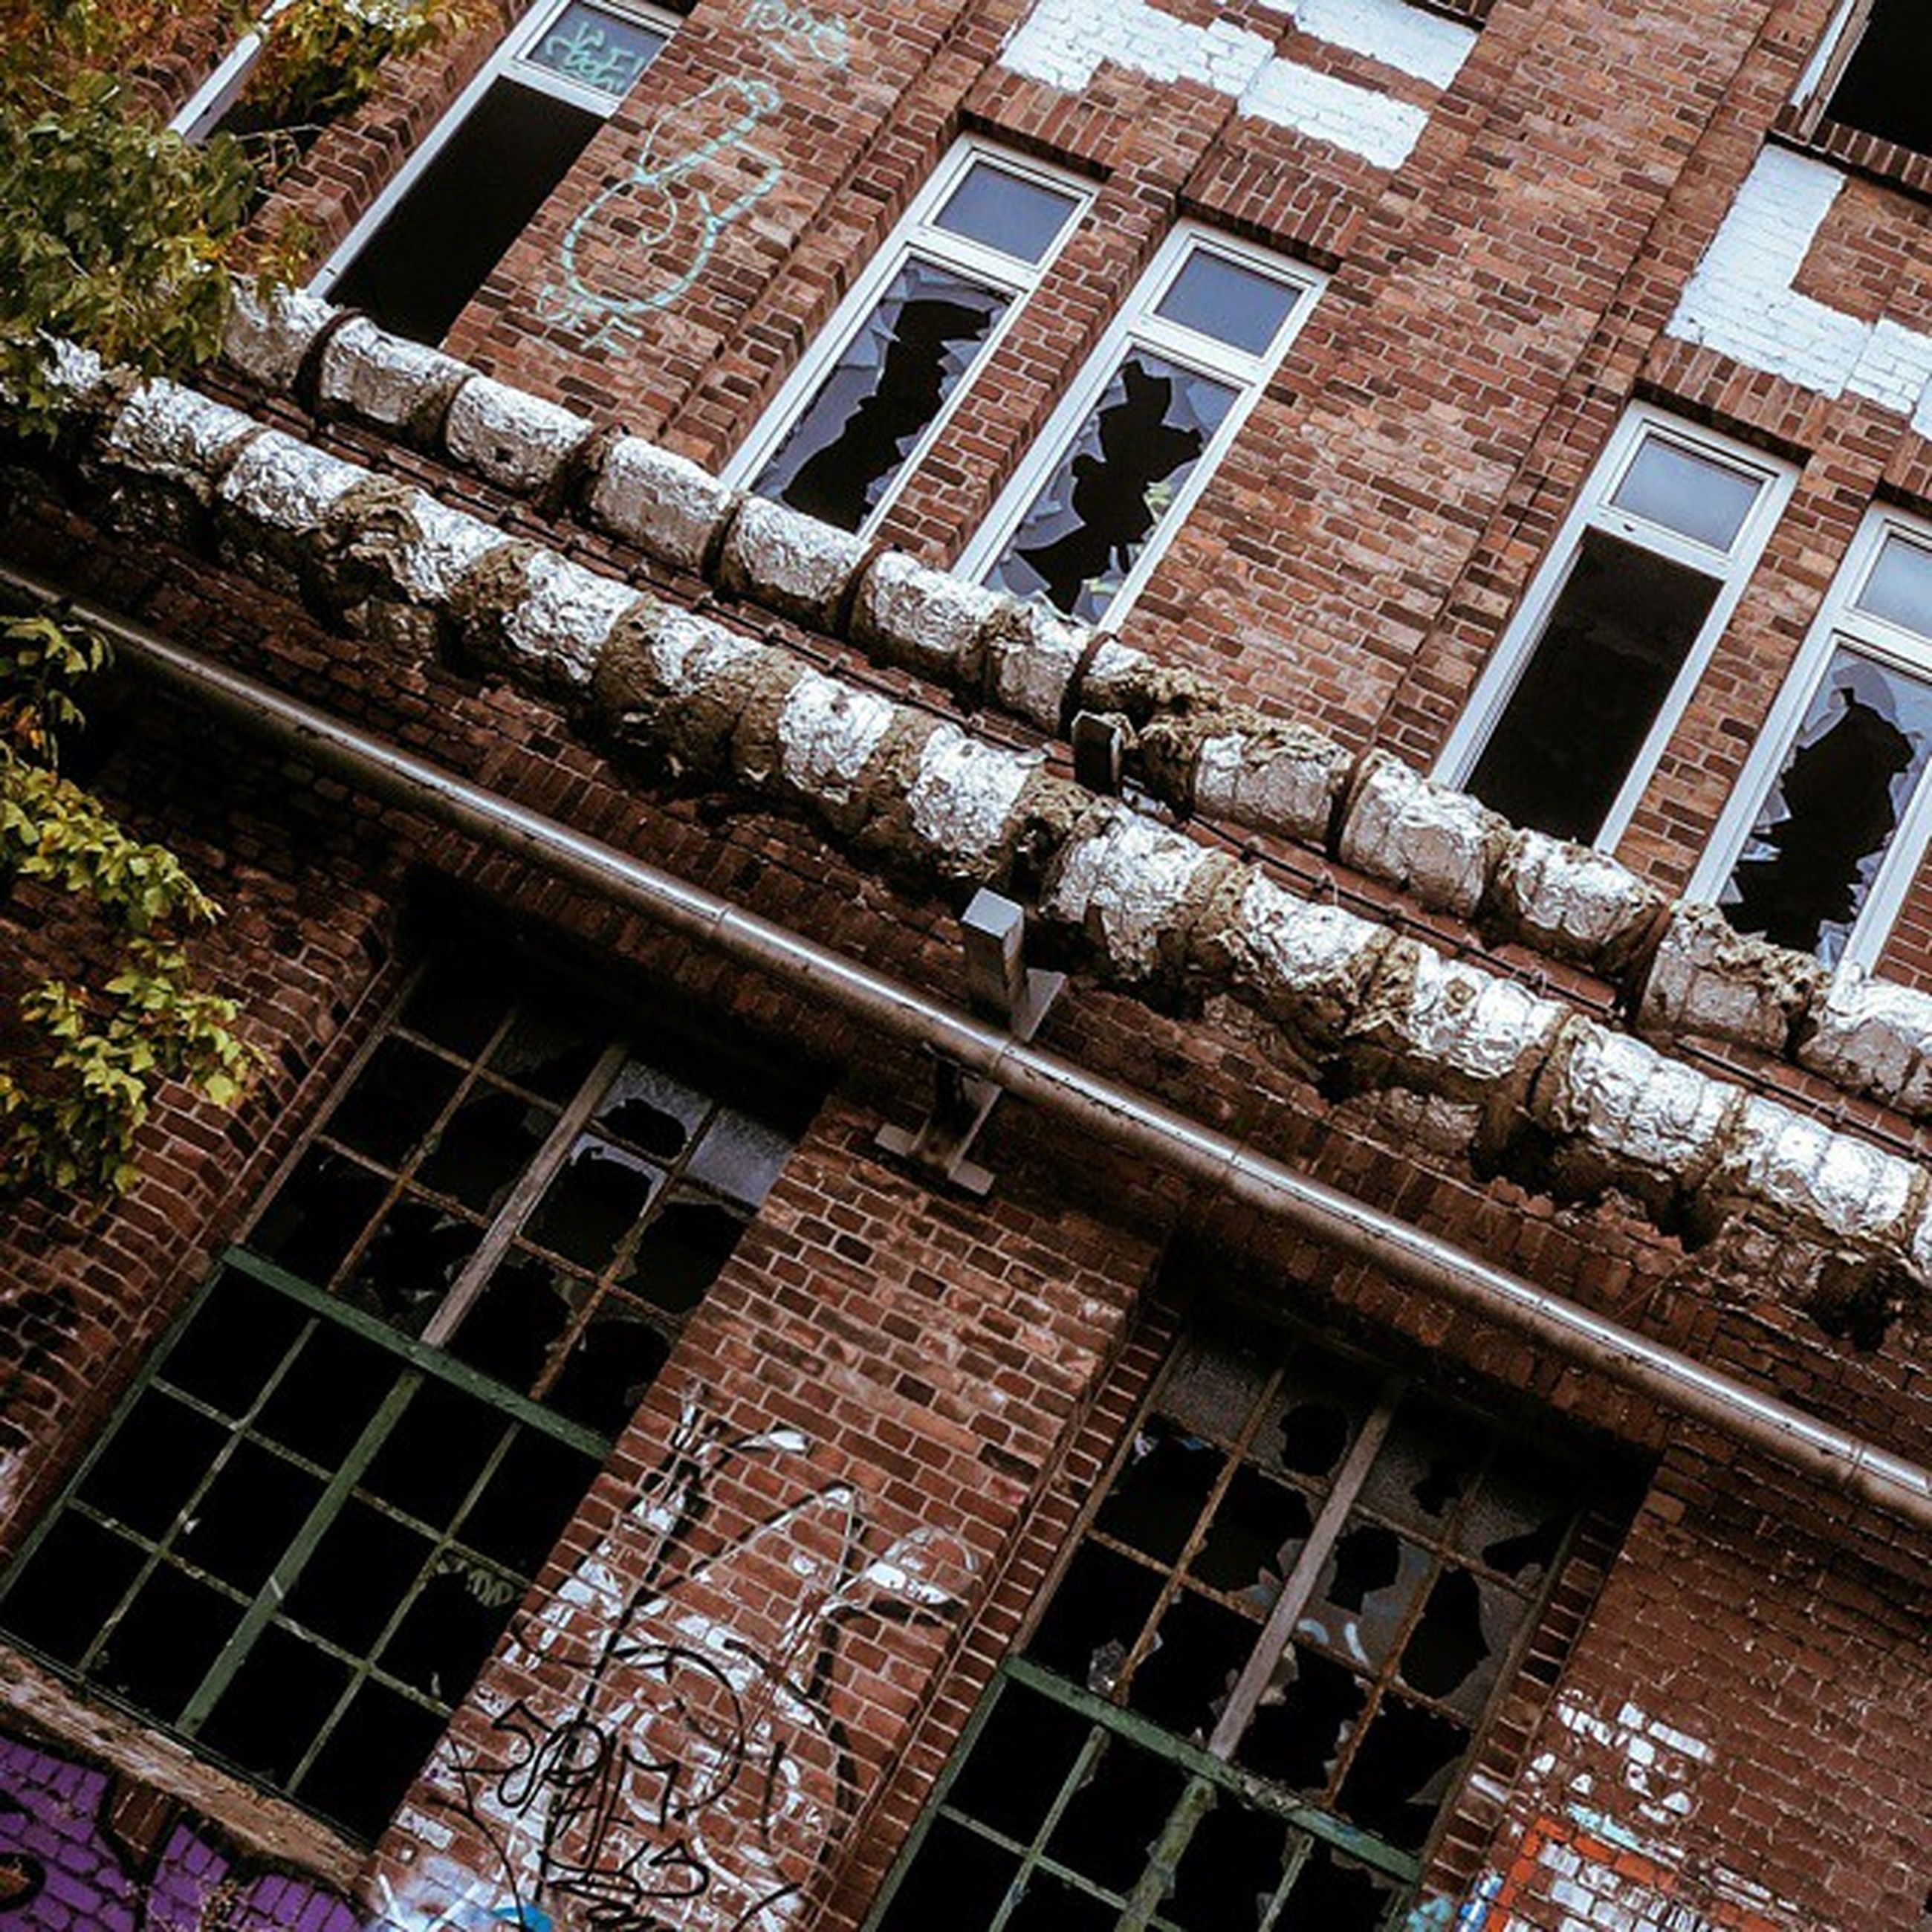 architecture, built structure, building exterior, window, low angle view, building, old, abandoned, residential building, damaged, residential structure, brick wall, weathered, day, outdoors, house, reflection, run-down, no people, full frame